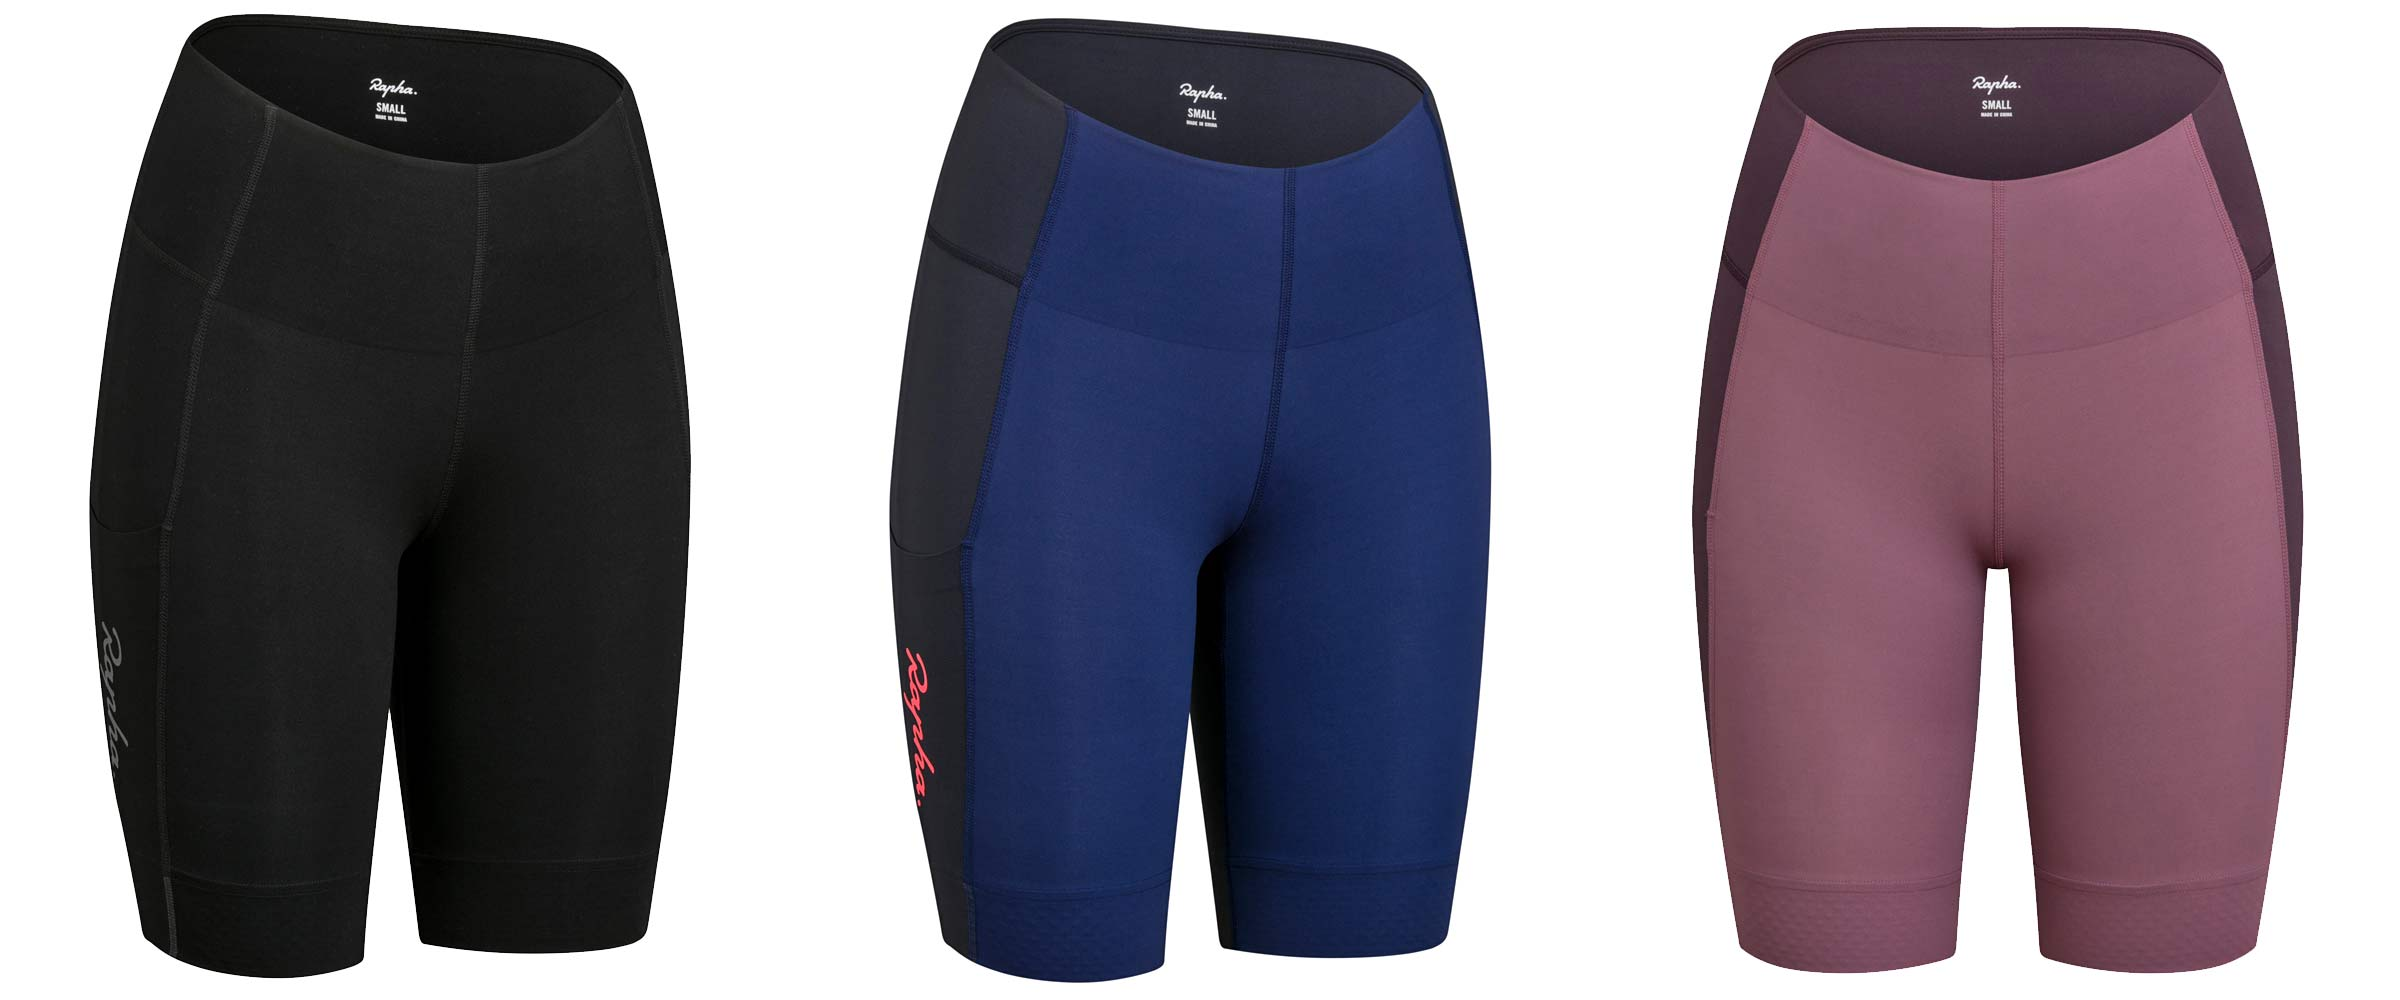 Rapha Women's All Day Leggings and Shorts,shorts